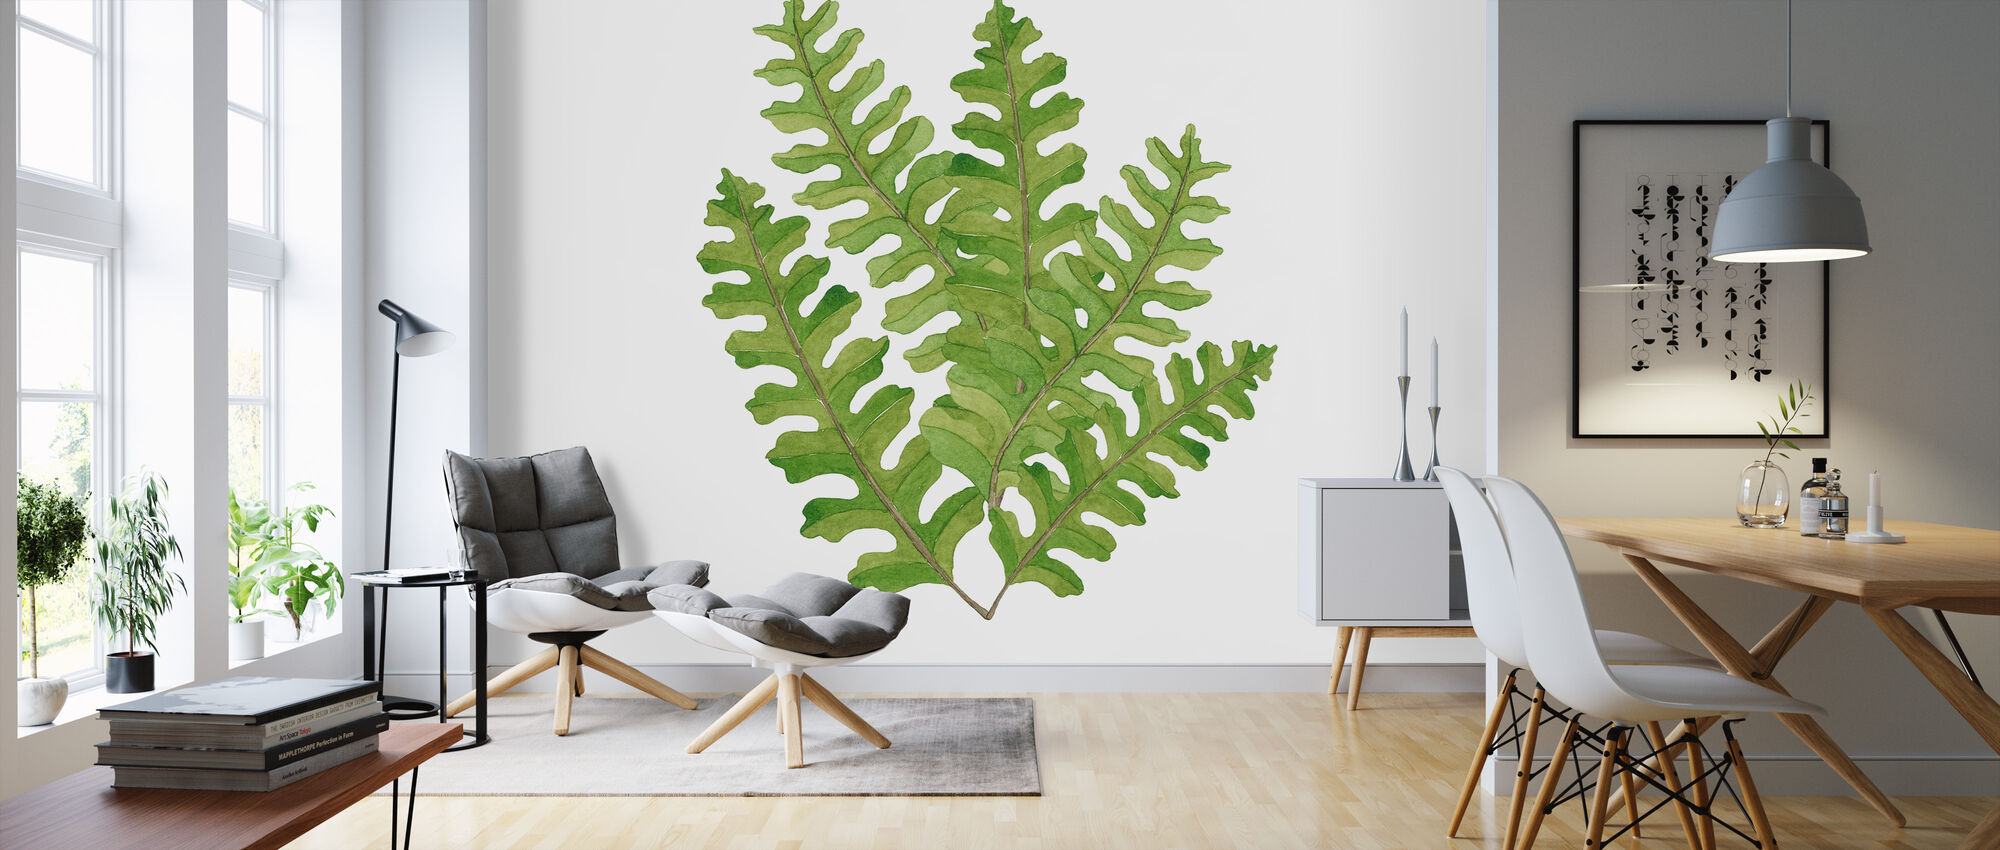 Plant Lush III - Wallpaper - Living Room